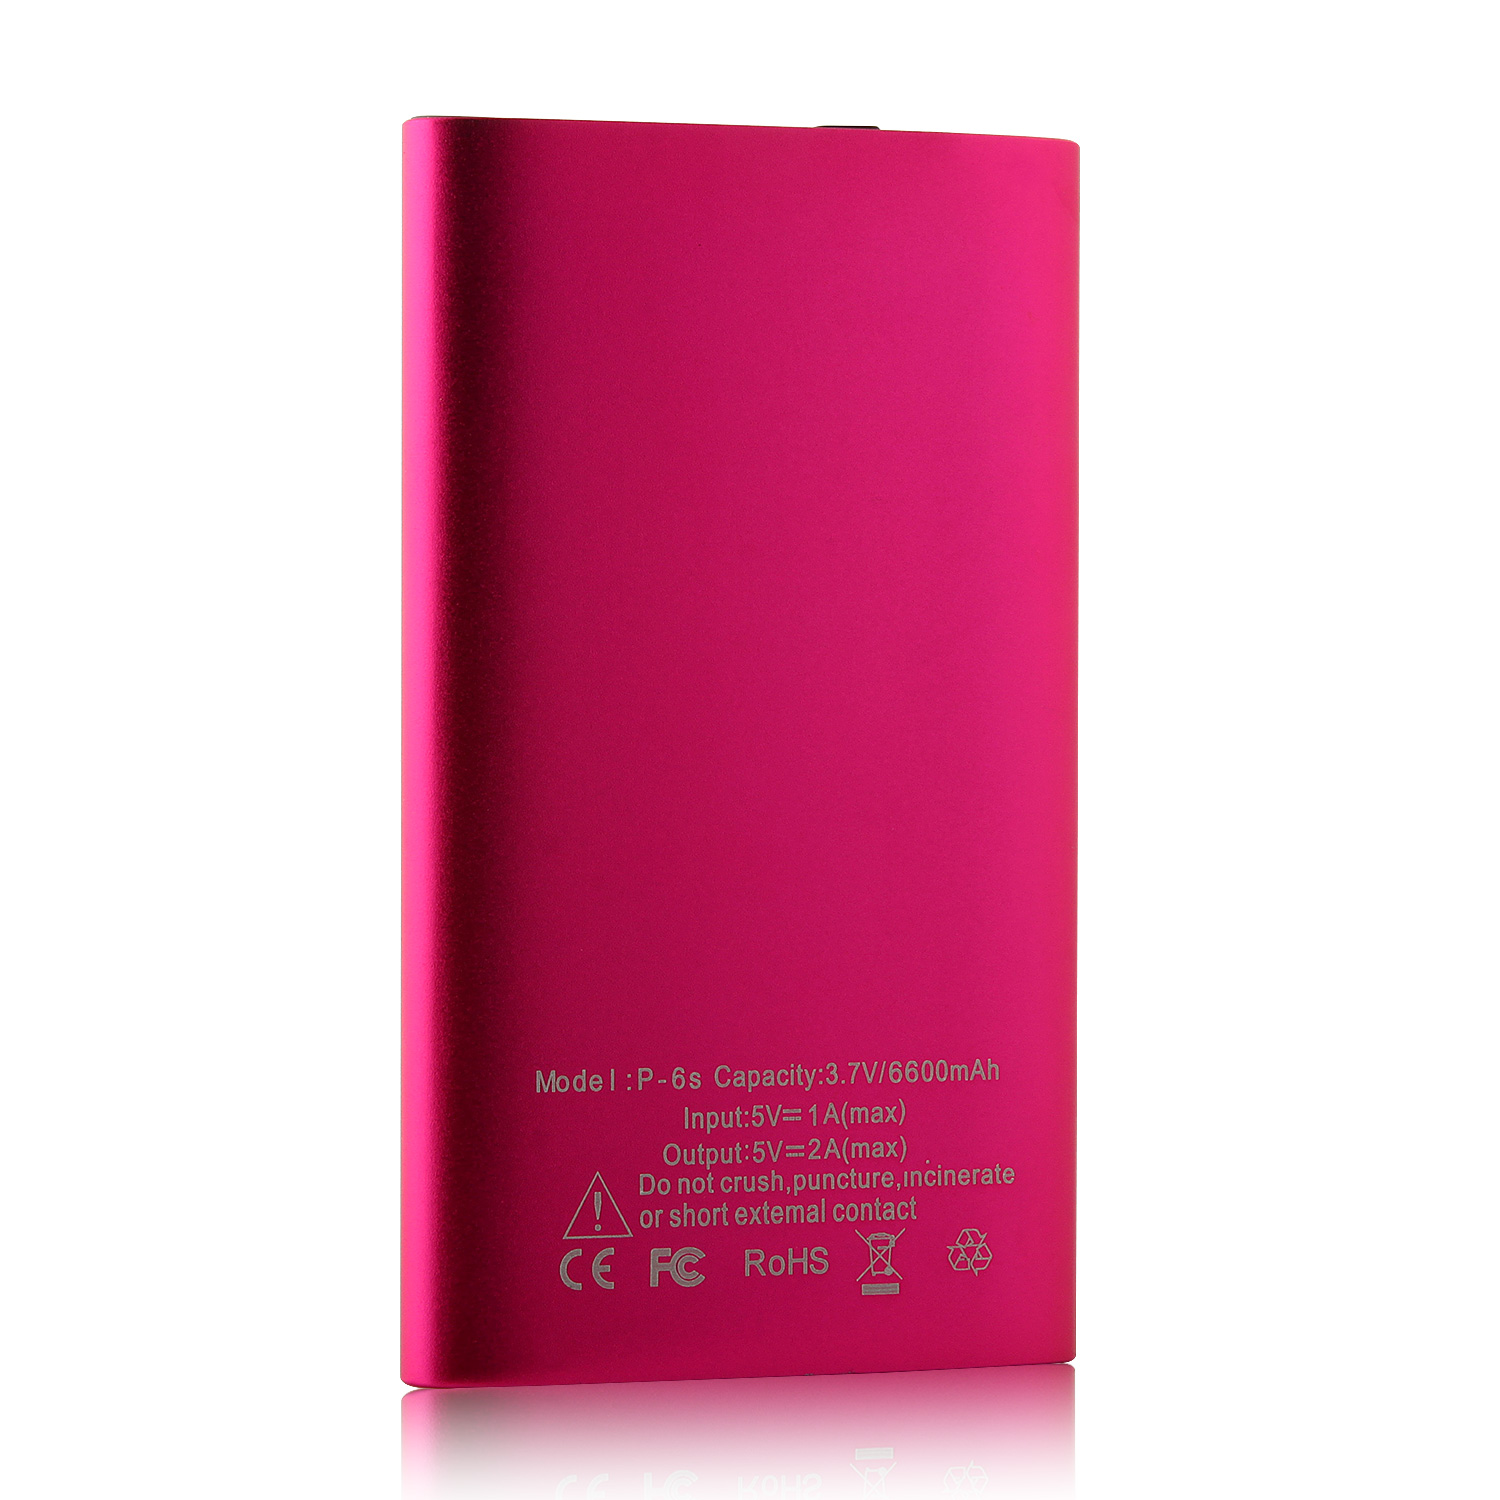 IHT P-6S 6600mAh Power Bank with 3-in-1 USB Cable for Smartphone Rose